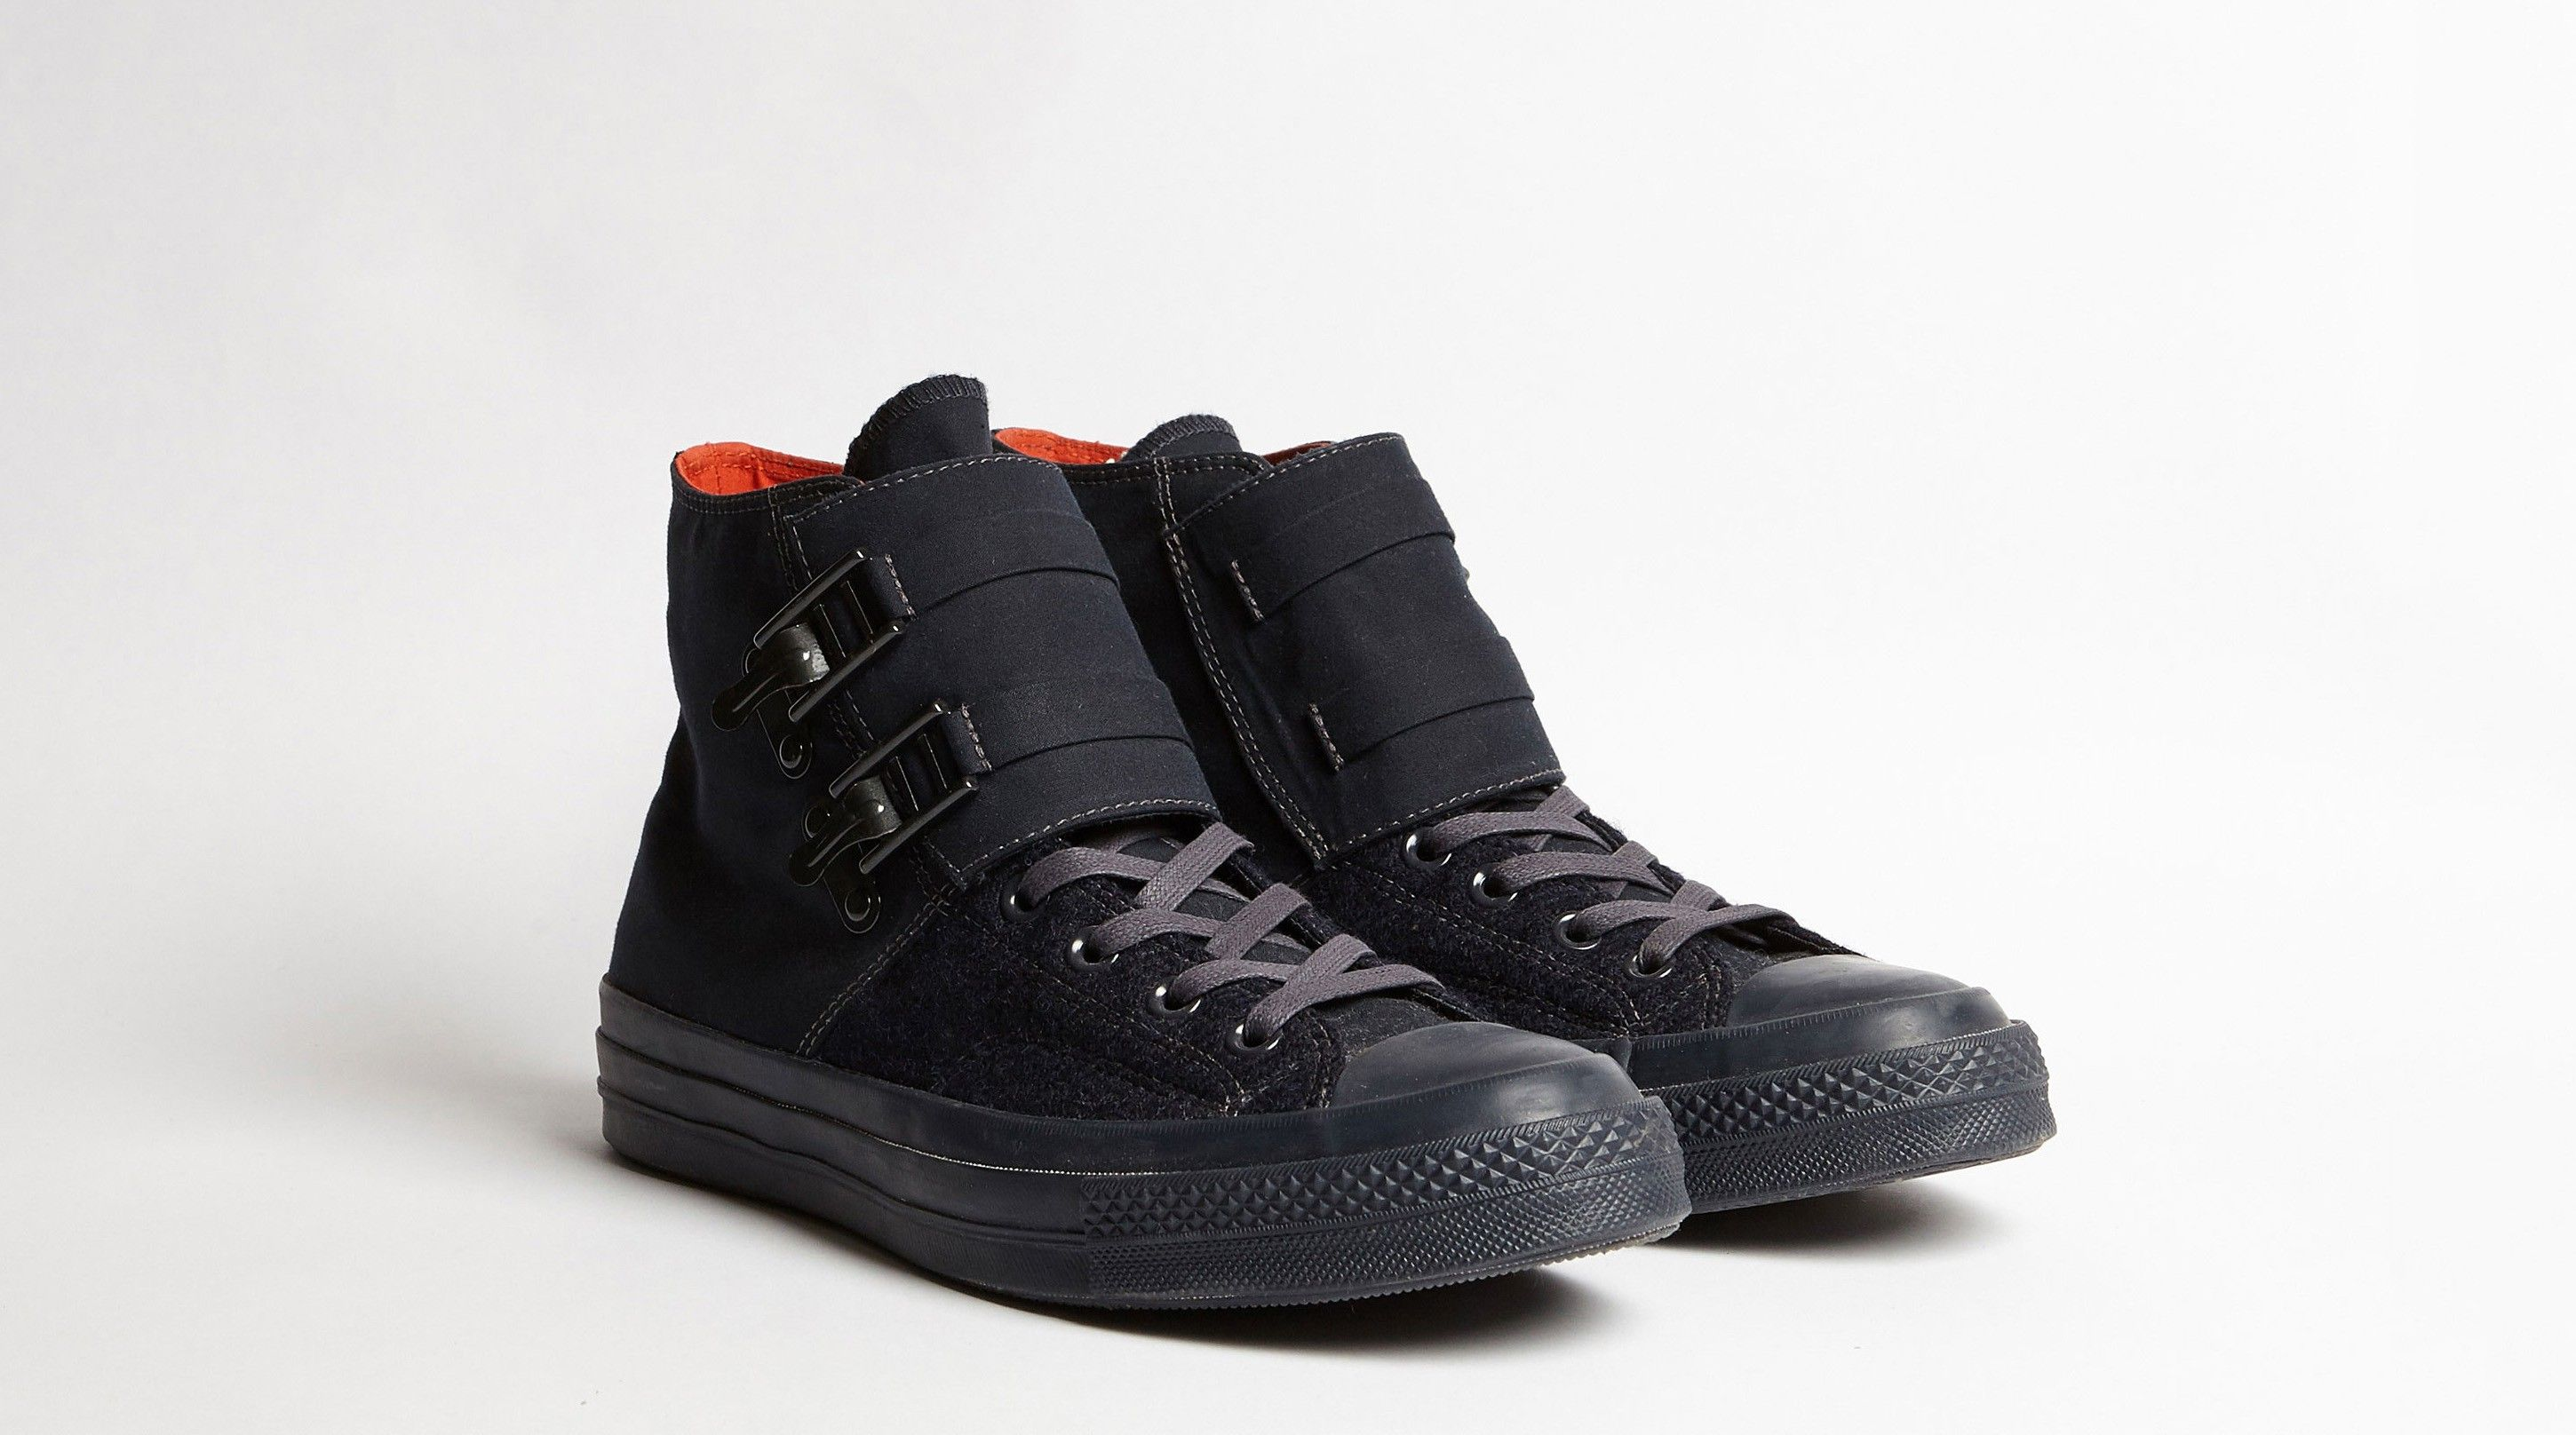 CAMERAMAN CONVERSE BLACK NAVY - By Nigel Cabourn